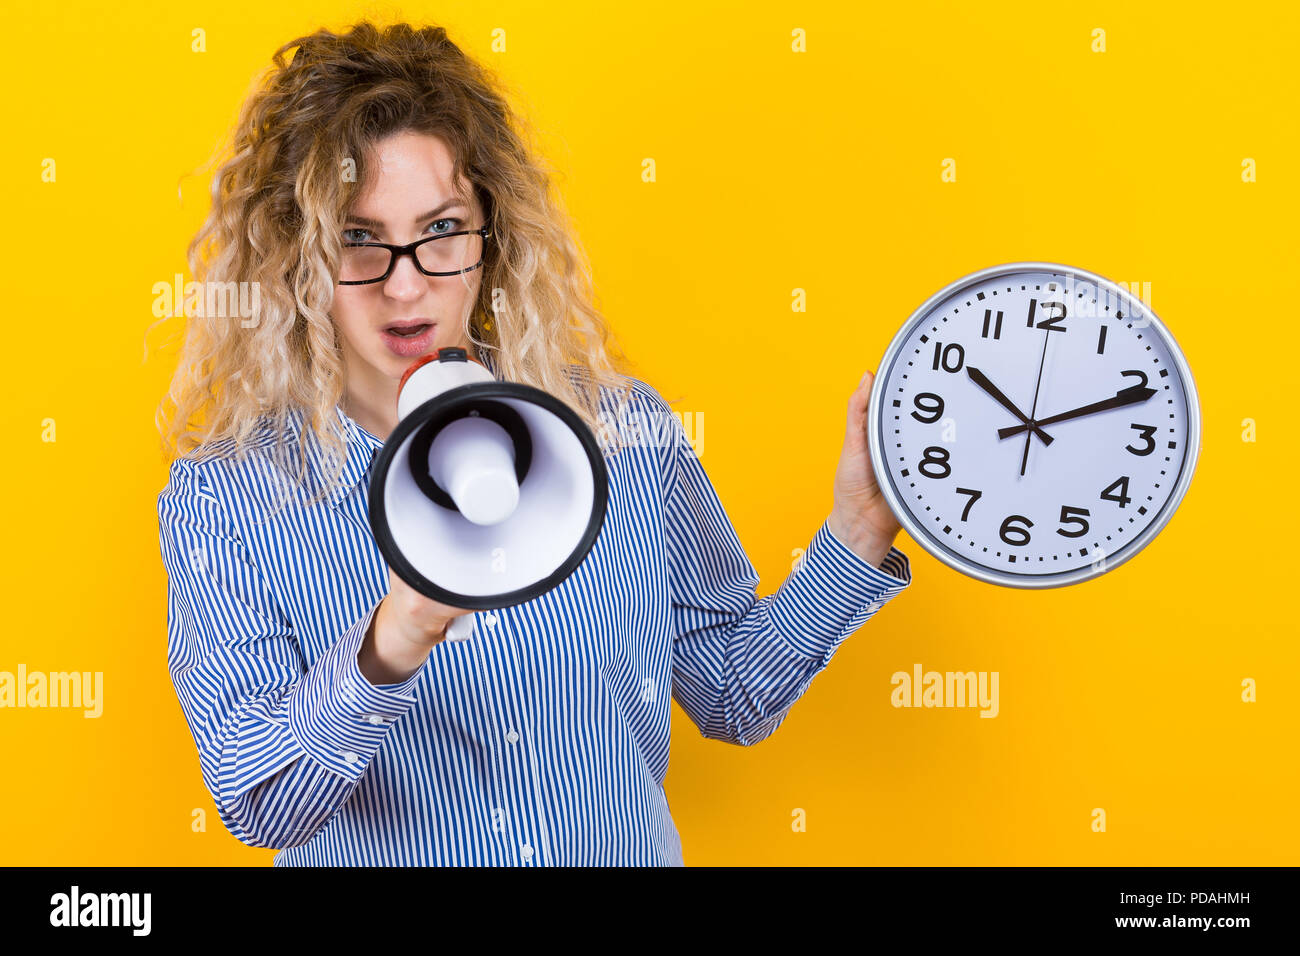 Woman in shirt with clocks and loudspeaker - Stock Image